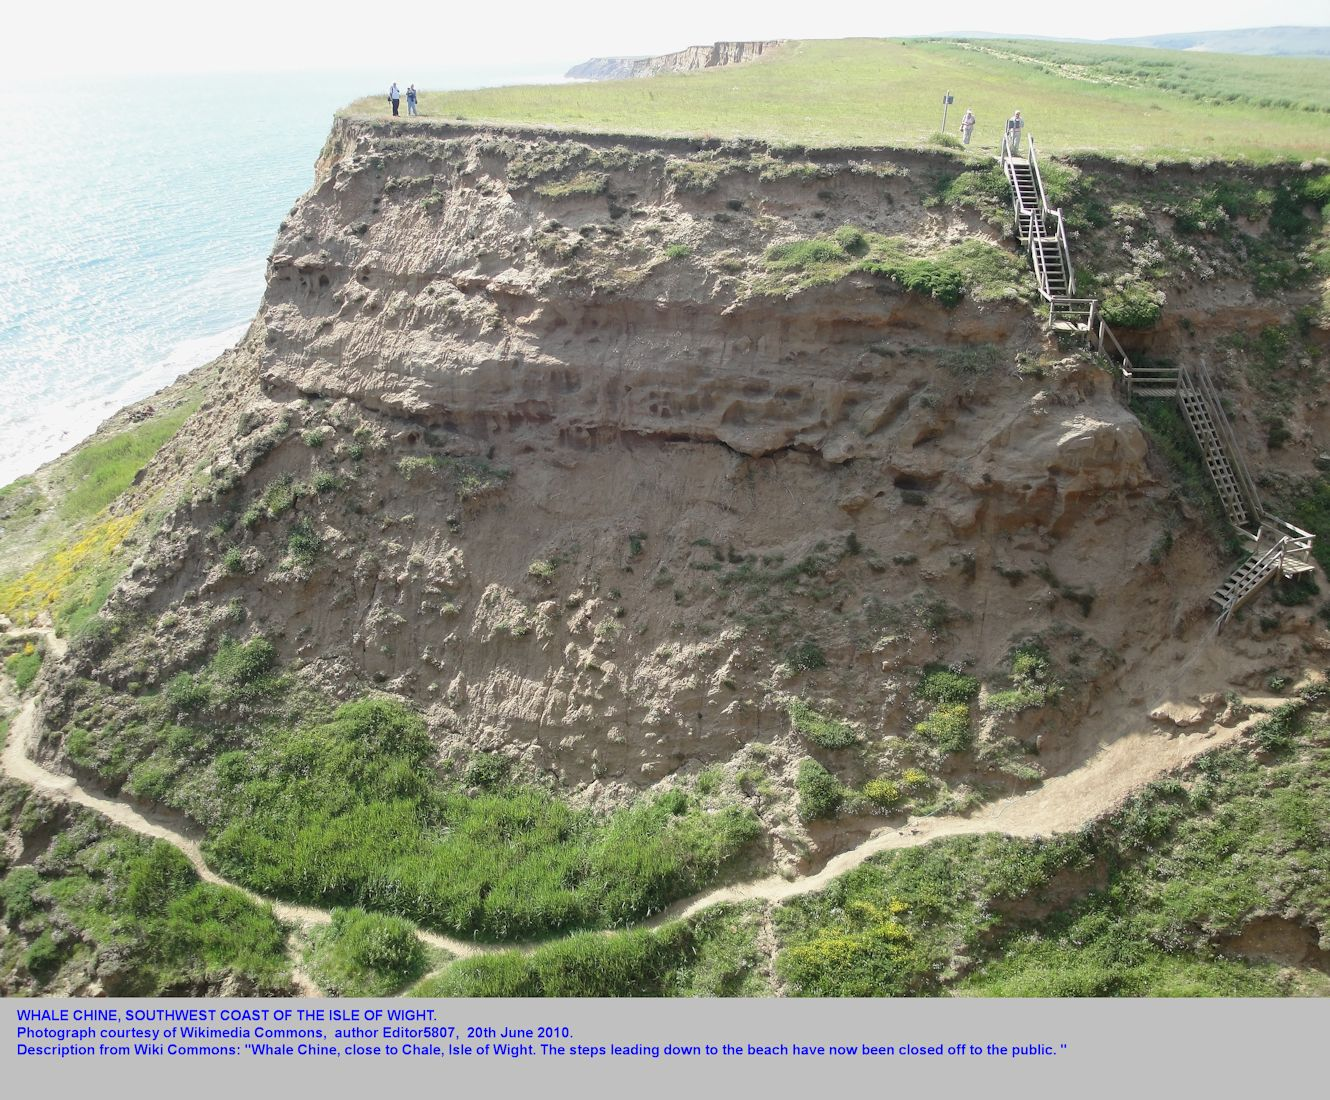 The steps down at Whale Chine, near Chale, Isle of Wight, in 2010, since closed to the public, image from Wikimedia Commons by Editor 5807